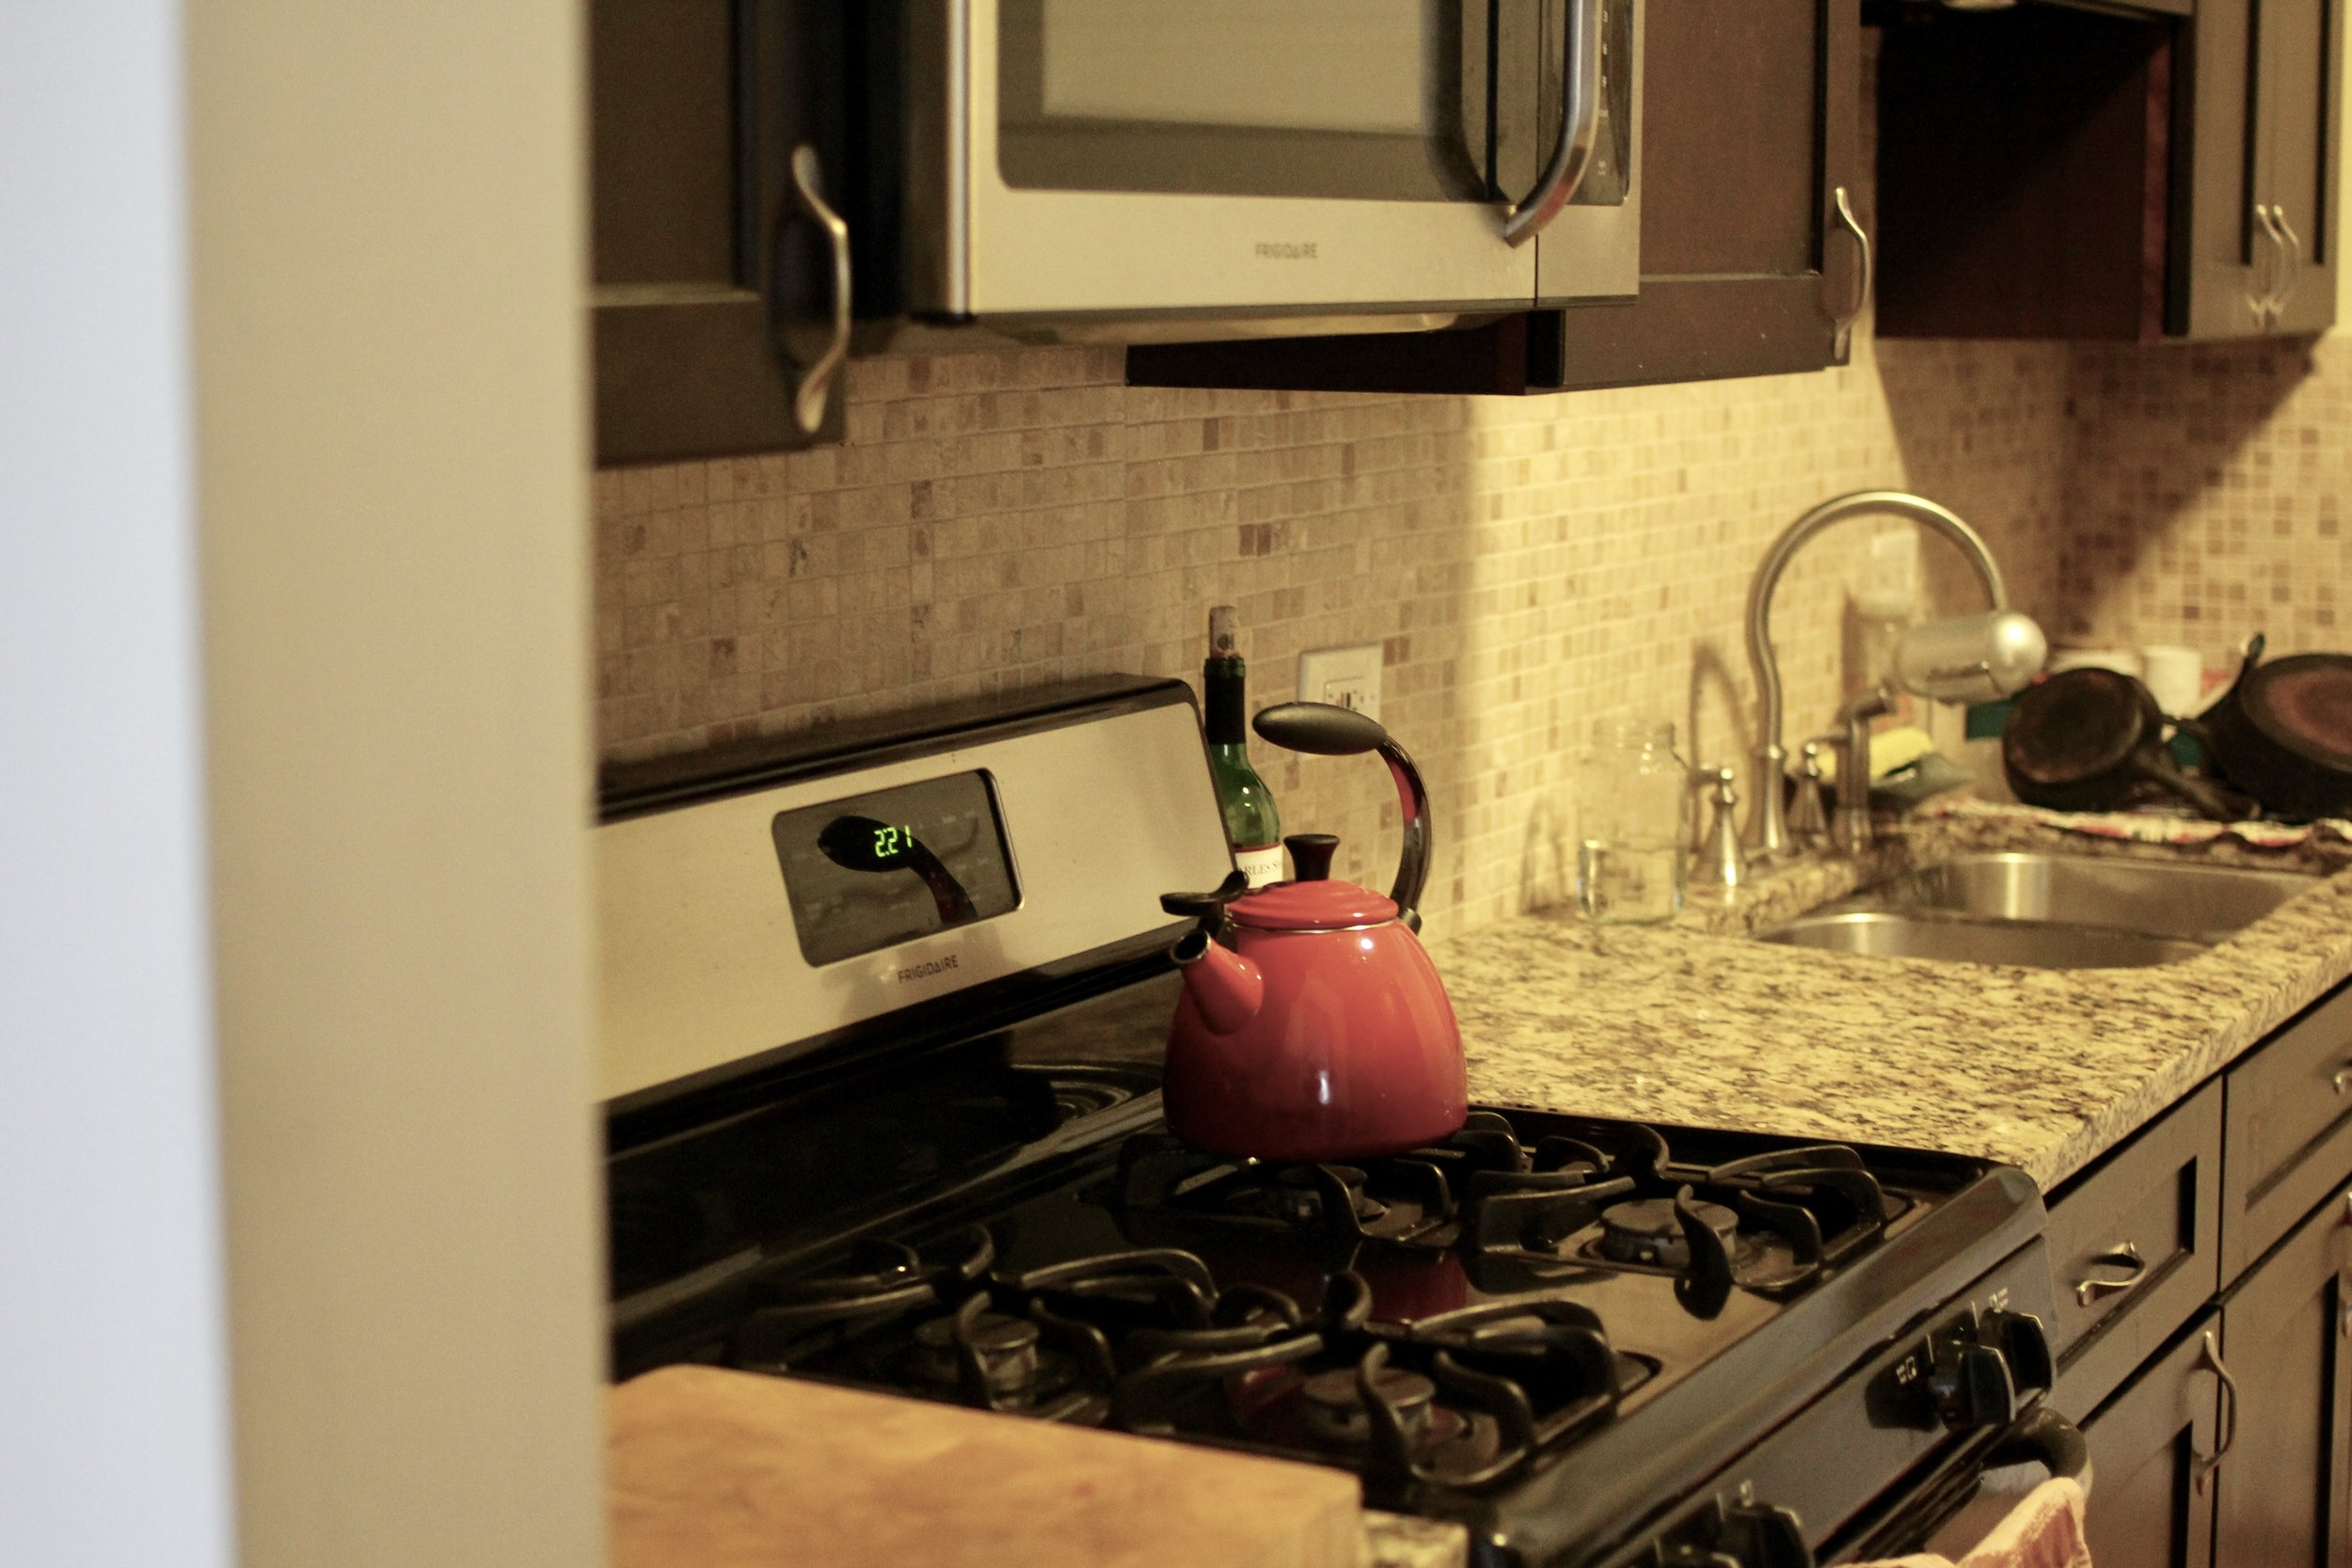 Stovetop in Kitchen with red tea kettle